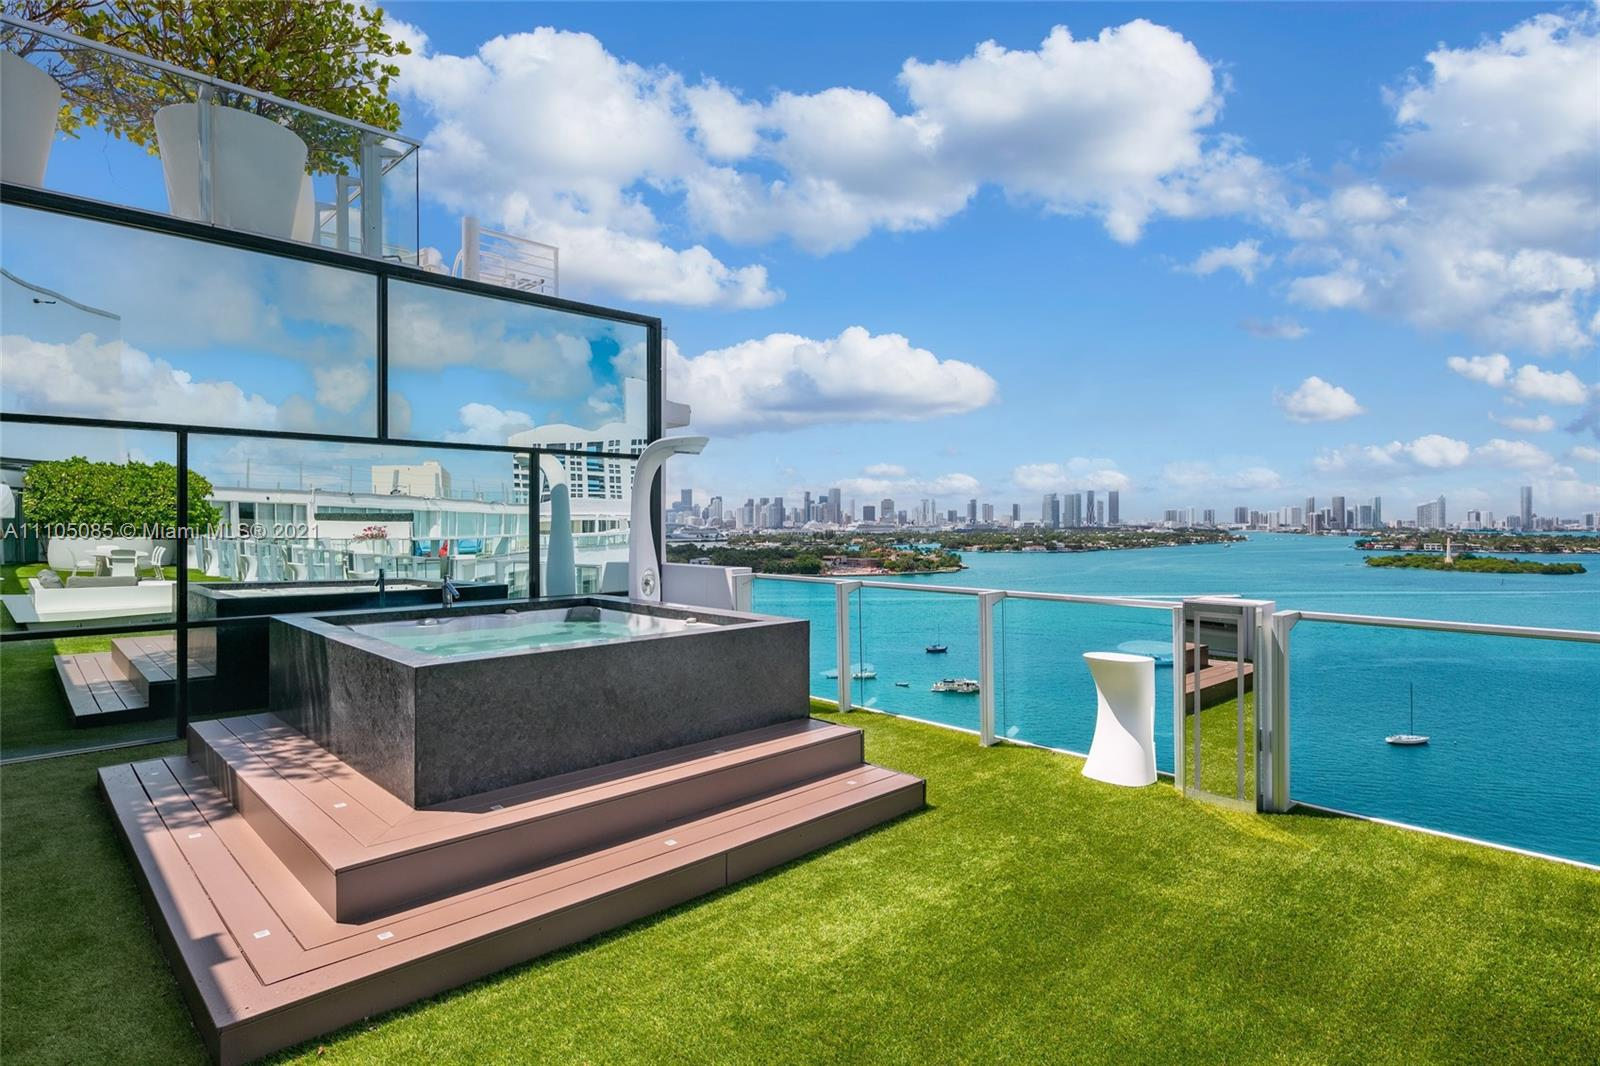 Welcome to the Ultimate South Beach Penthouse! This Designer Curated Residence is the ONLY combined Tower Suite at the Mondrian Hotel & is the LARGEST In the building at over 4,120SF. Enjoy 3 Bedrooms , which includes 2 oversized primary suites , an office, chefs kitchen w/ top of the line appliances, smart home system, a 1,400 SF Terrace w/ private jacuzzi & completely unobstructed Bay & Downtown Skyline views from every room. You will be hard pressed to find a better postcard view of the Downtown Skyline Sunsets .TS2/3 offers a sprawling open layout with tons of entertainment space for those who want to host & entertain. Additionally, the newly renovated Mondrian Hotel offers a world class spa, bay front fitness center center & Baia Beach Club which has a fun, sexy vibe & 5 star dining.